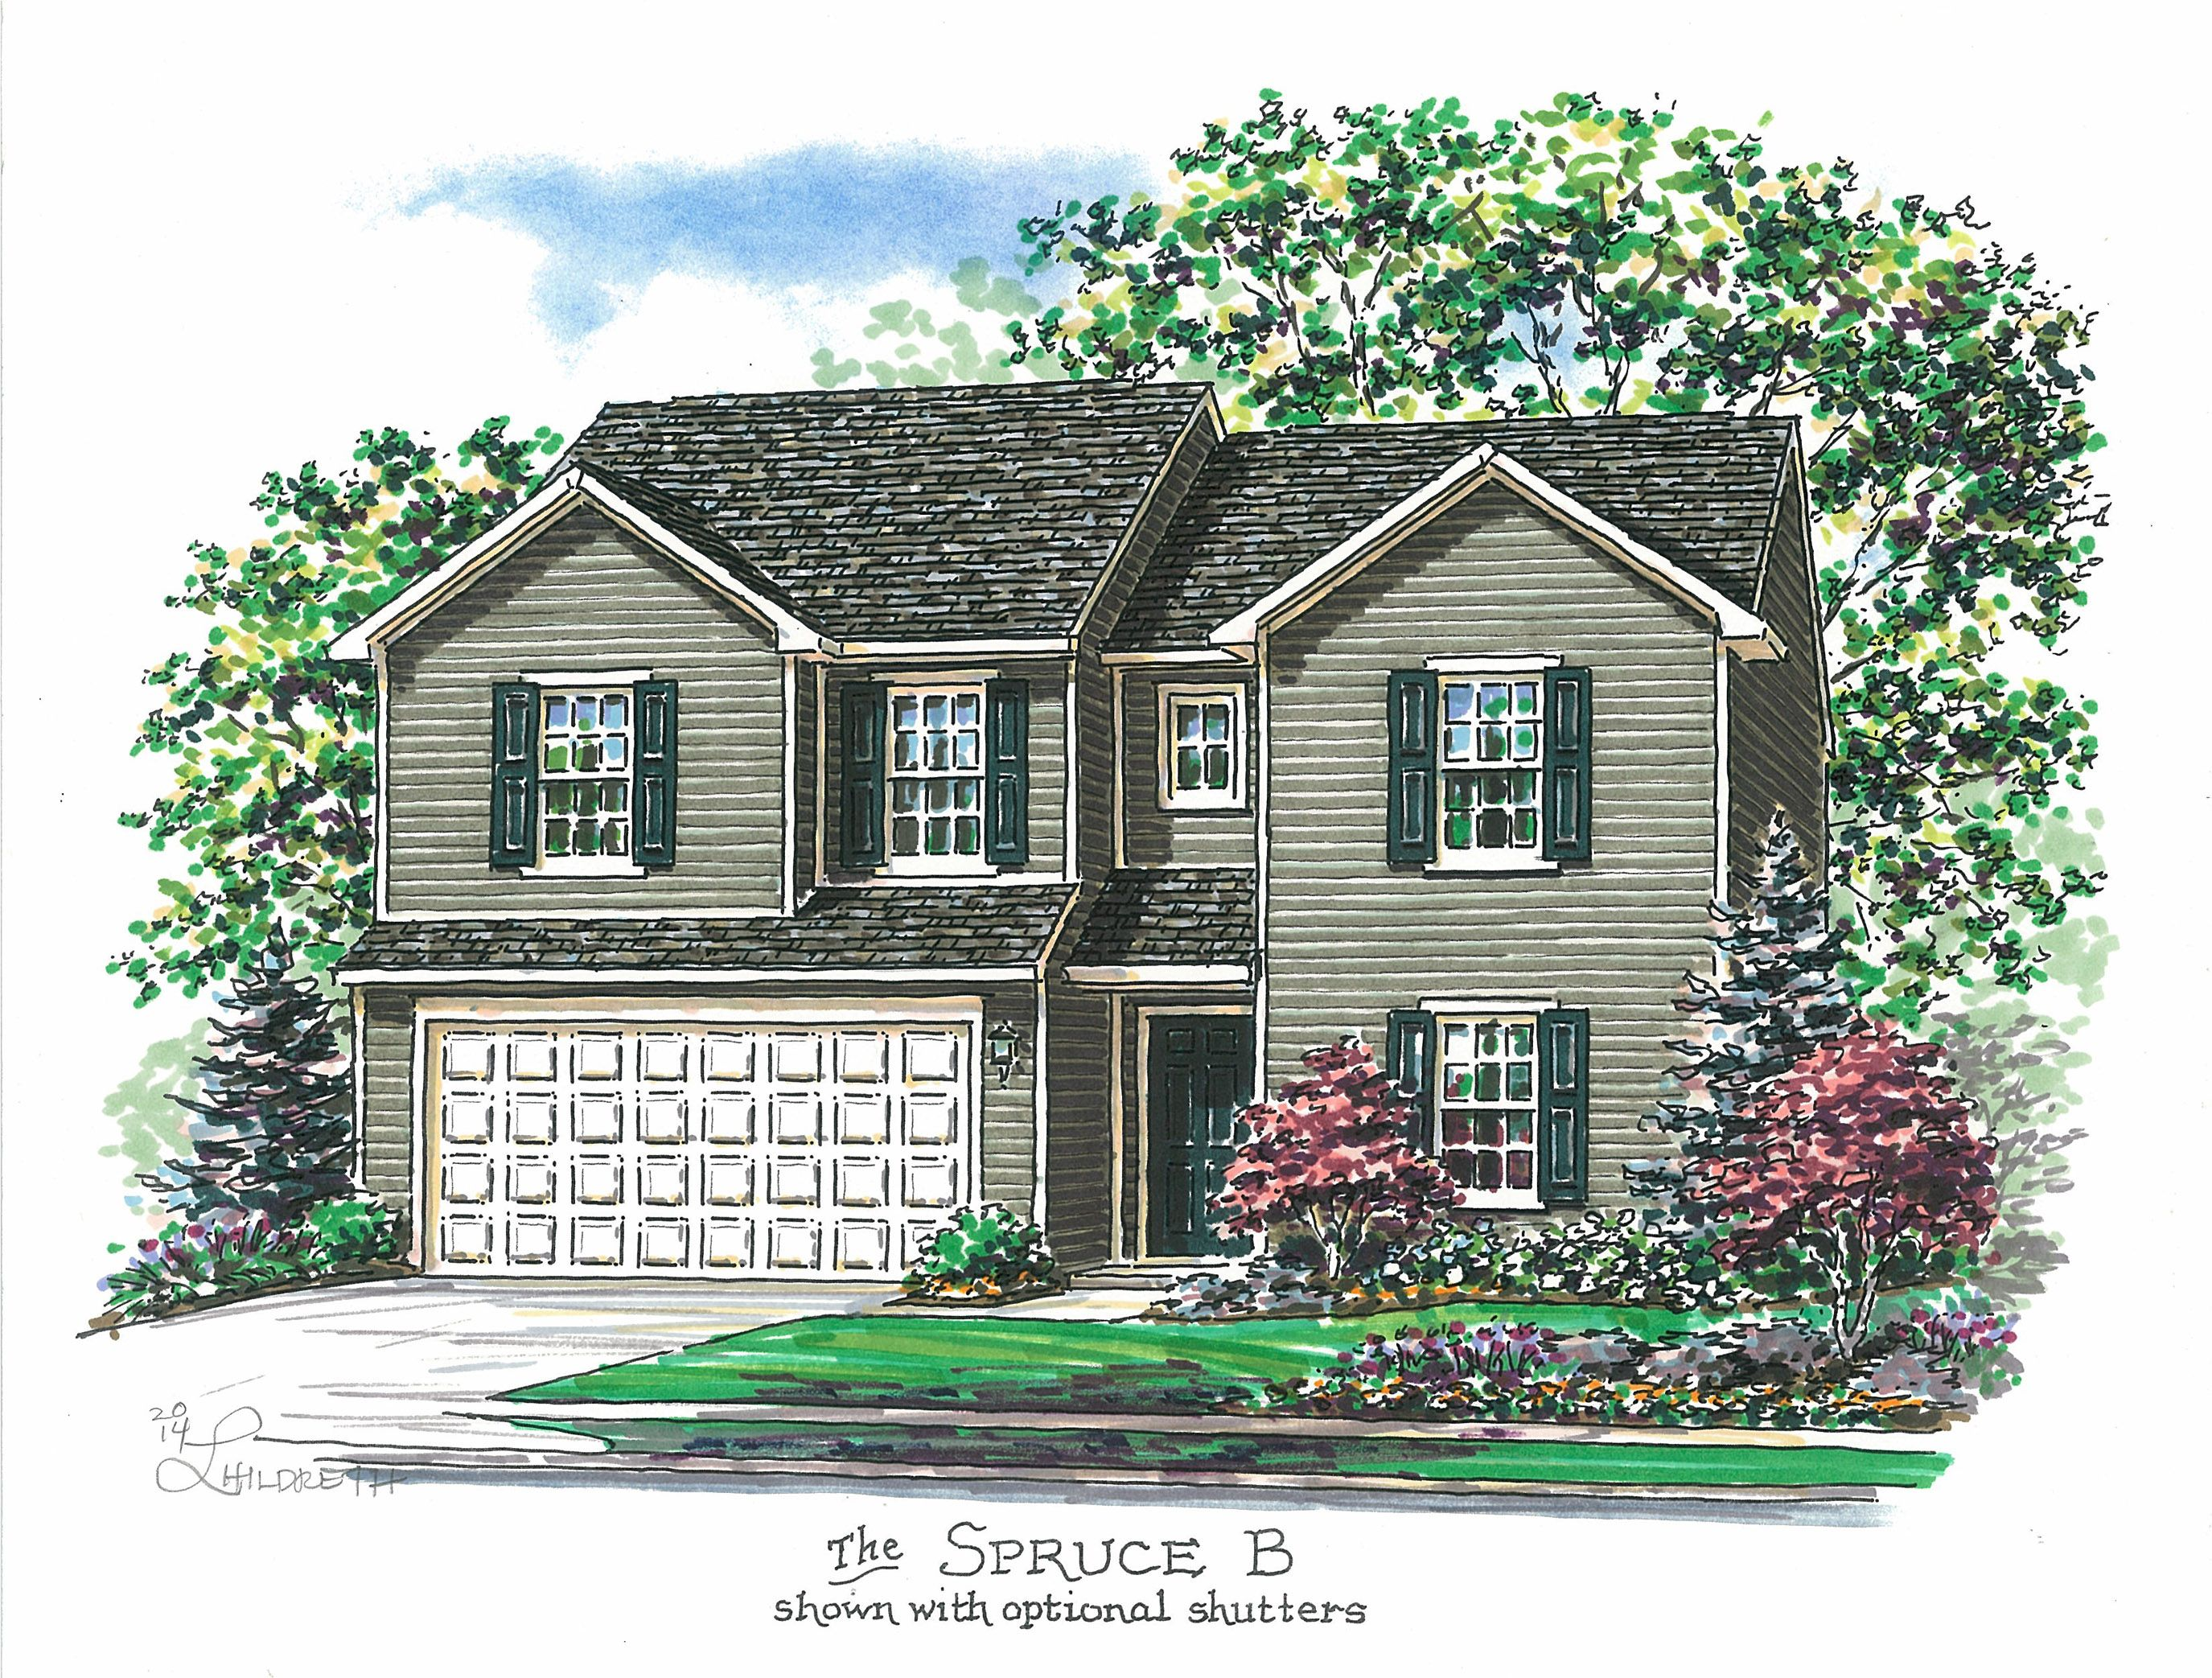 Spruce B shown with optional shutters House styles